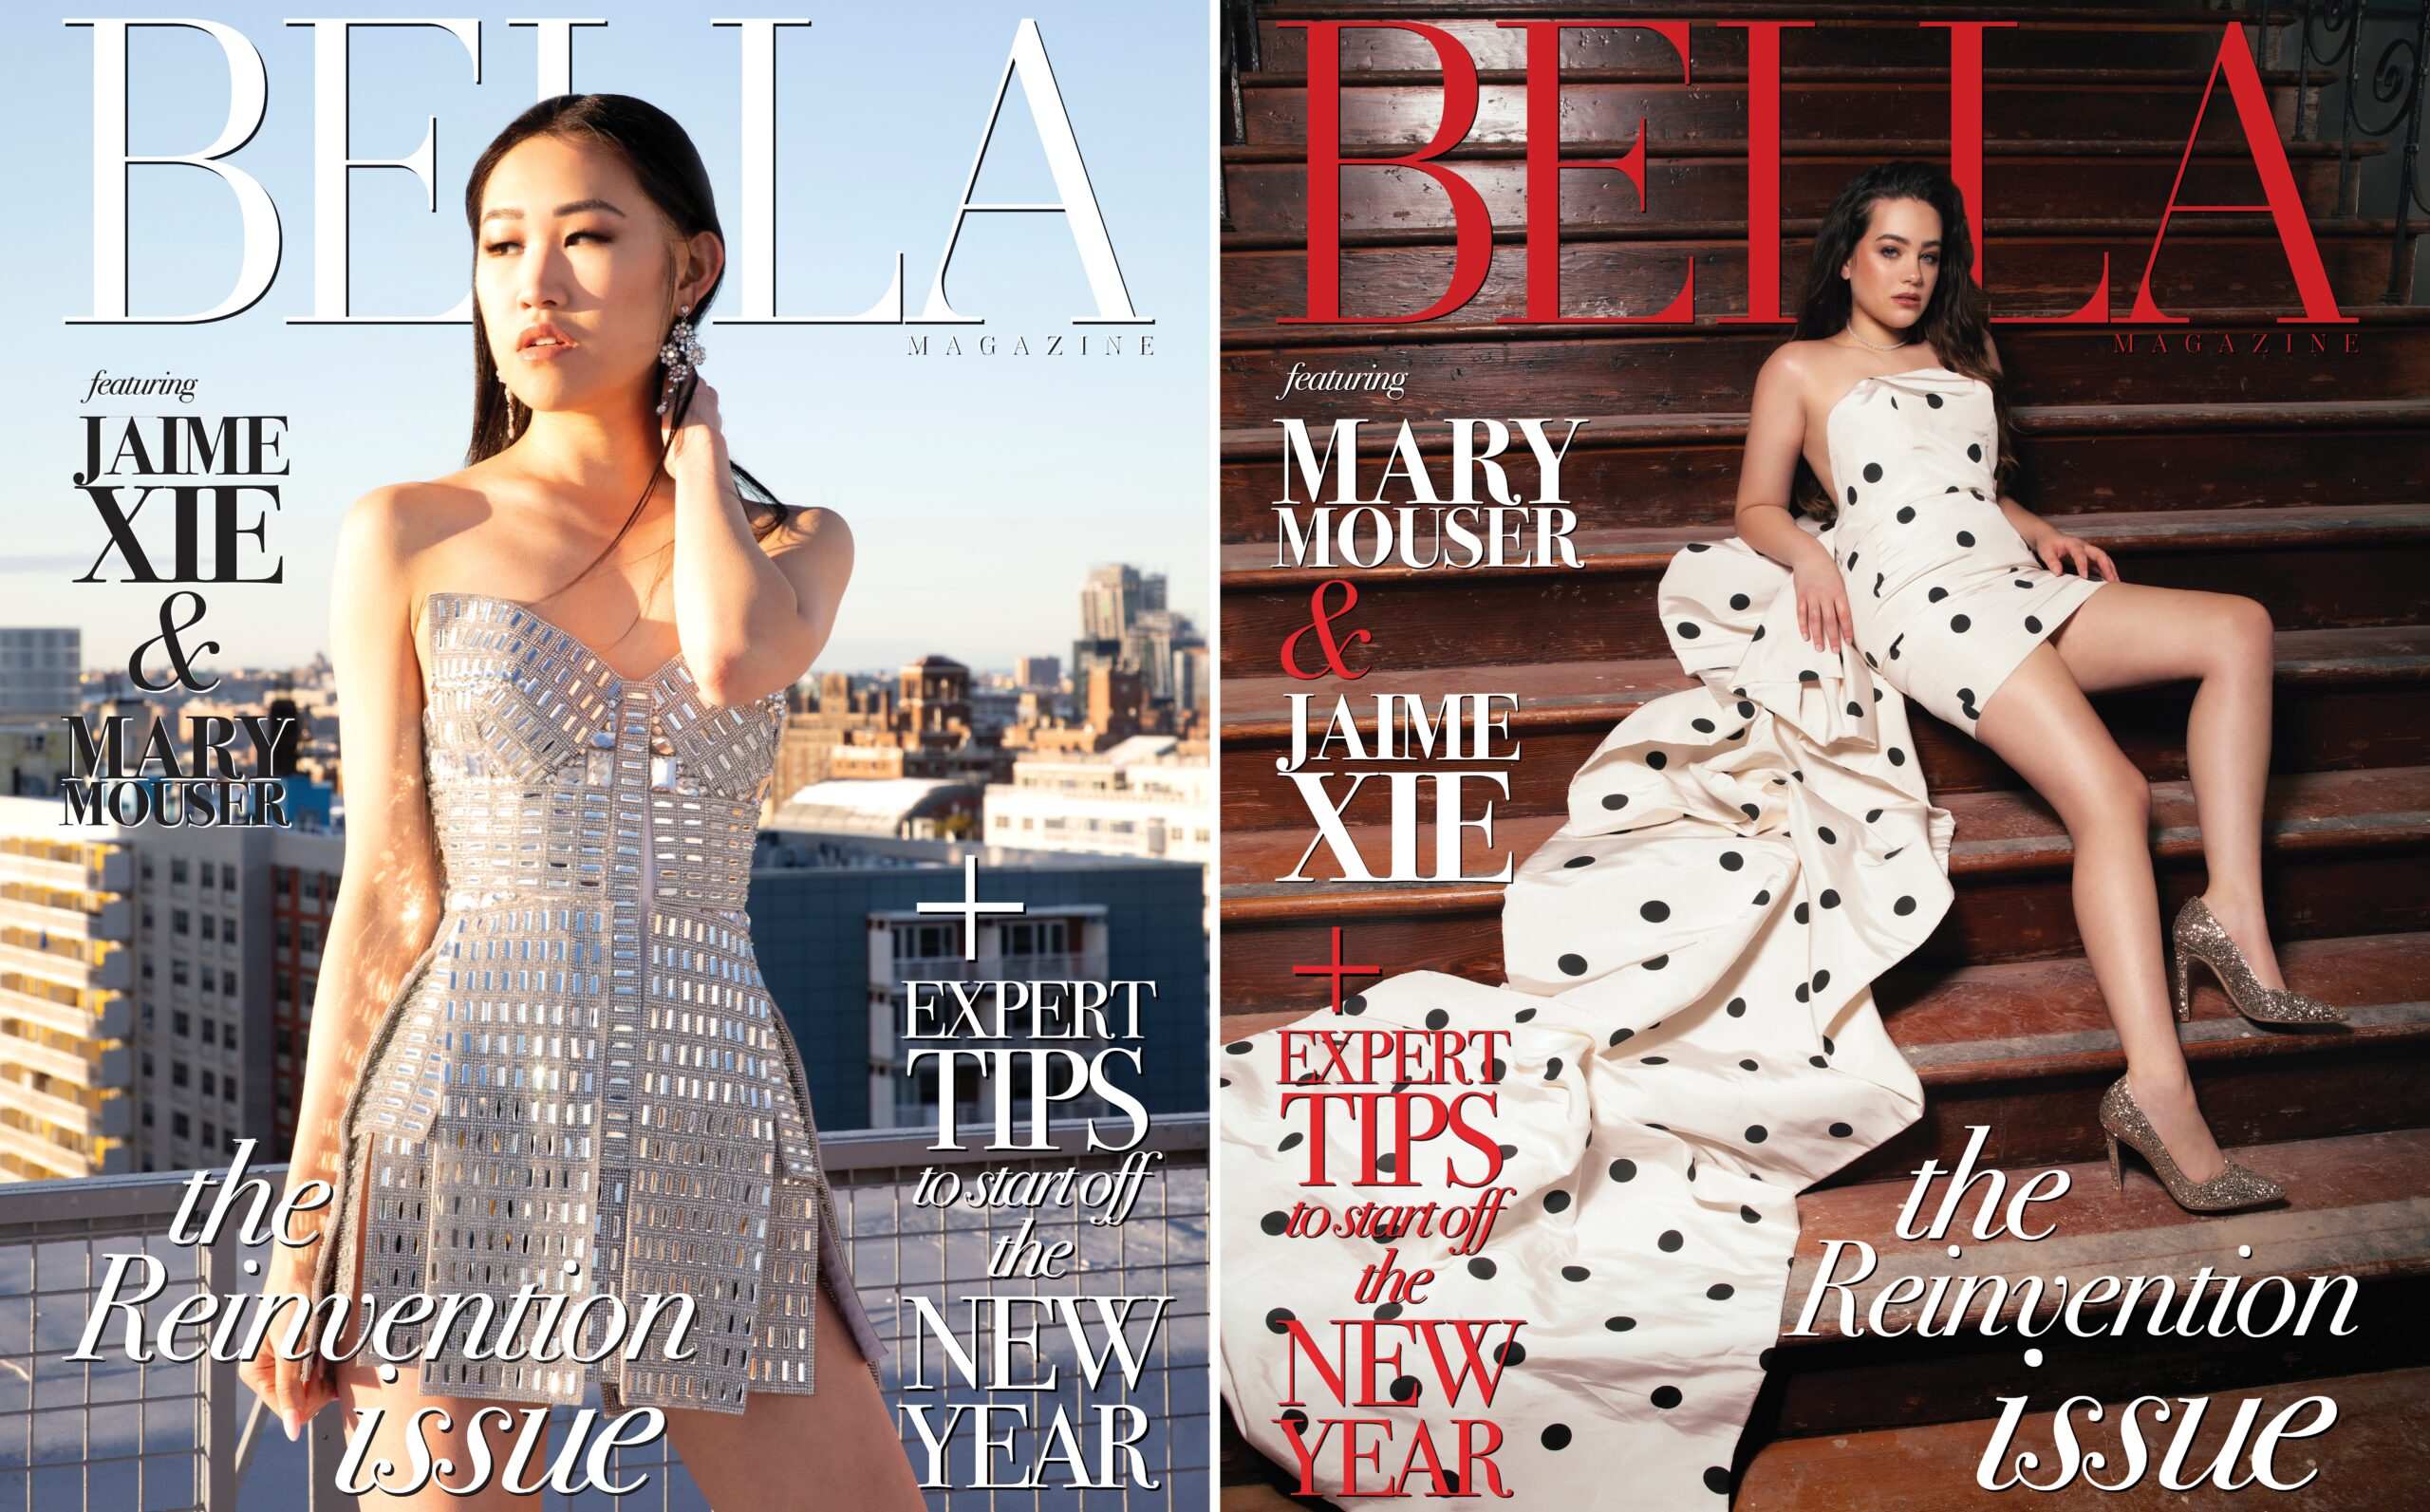 BELLA Magazine Features Jaime Xie On First-Ever Asian Cover